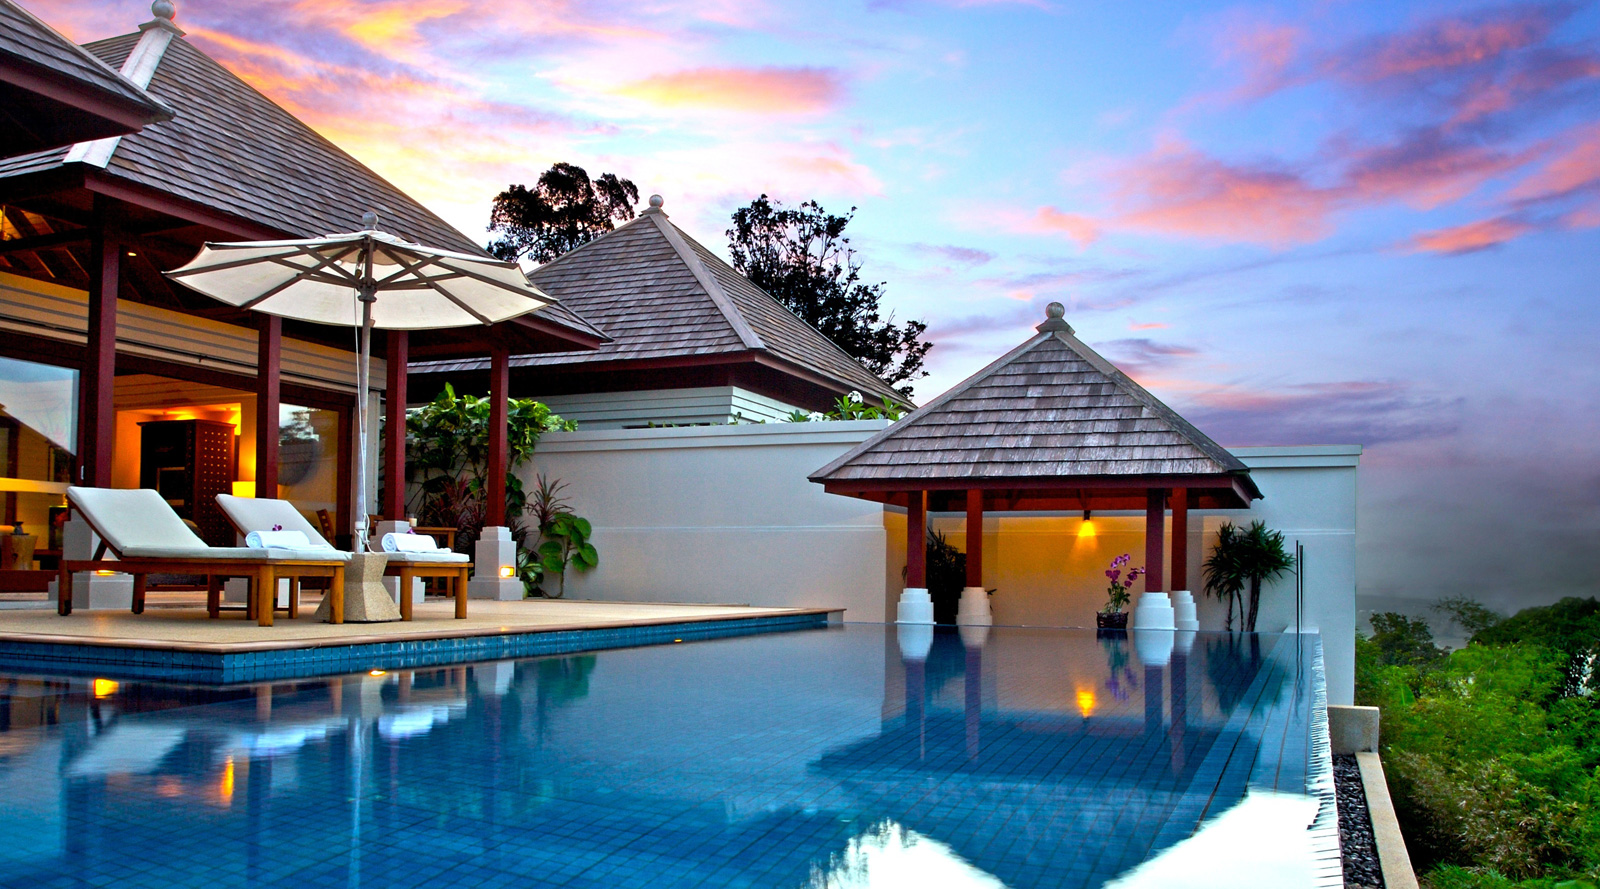 Top wallpapers images dream house for Dream house 3d